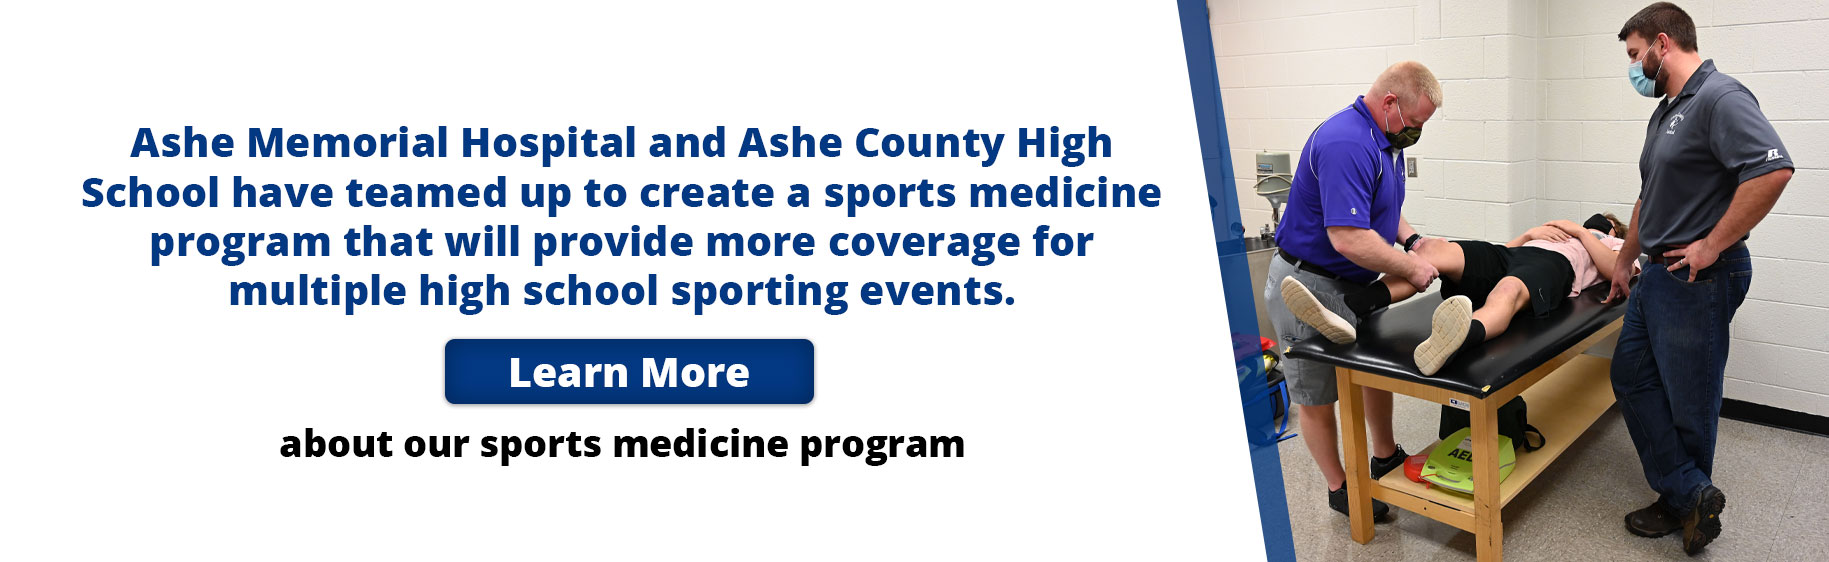 Picture of male patient lying down on table while one man stands next to him wearing a mask and the other man is stretching patients leg. They wearing mask as well  Banner says: Ashe Memorial Hospital and Ashe County High School have teamed up to create a sports medicine program that will provide more coverage for multiple high school sporting events. Learn more about our sports medicine program